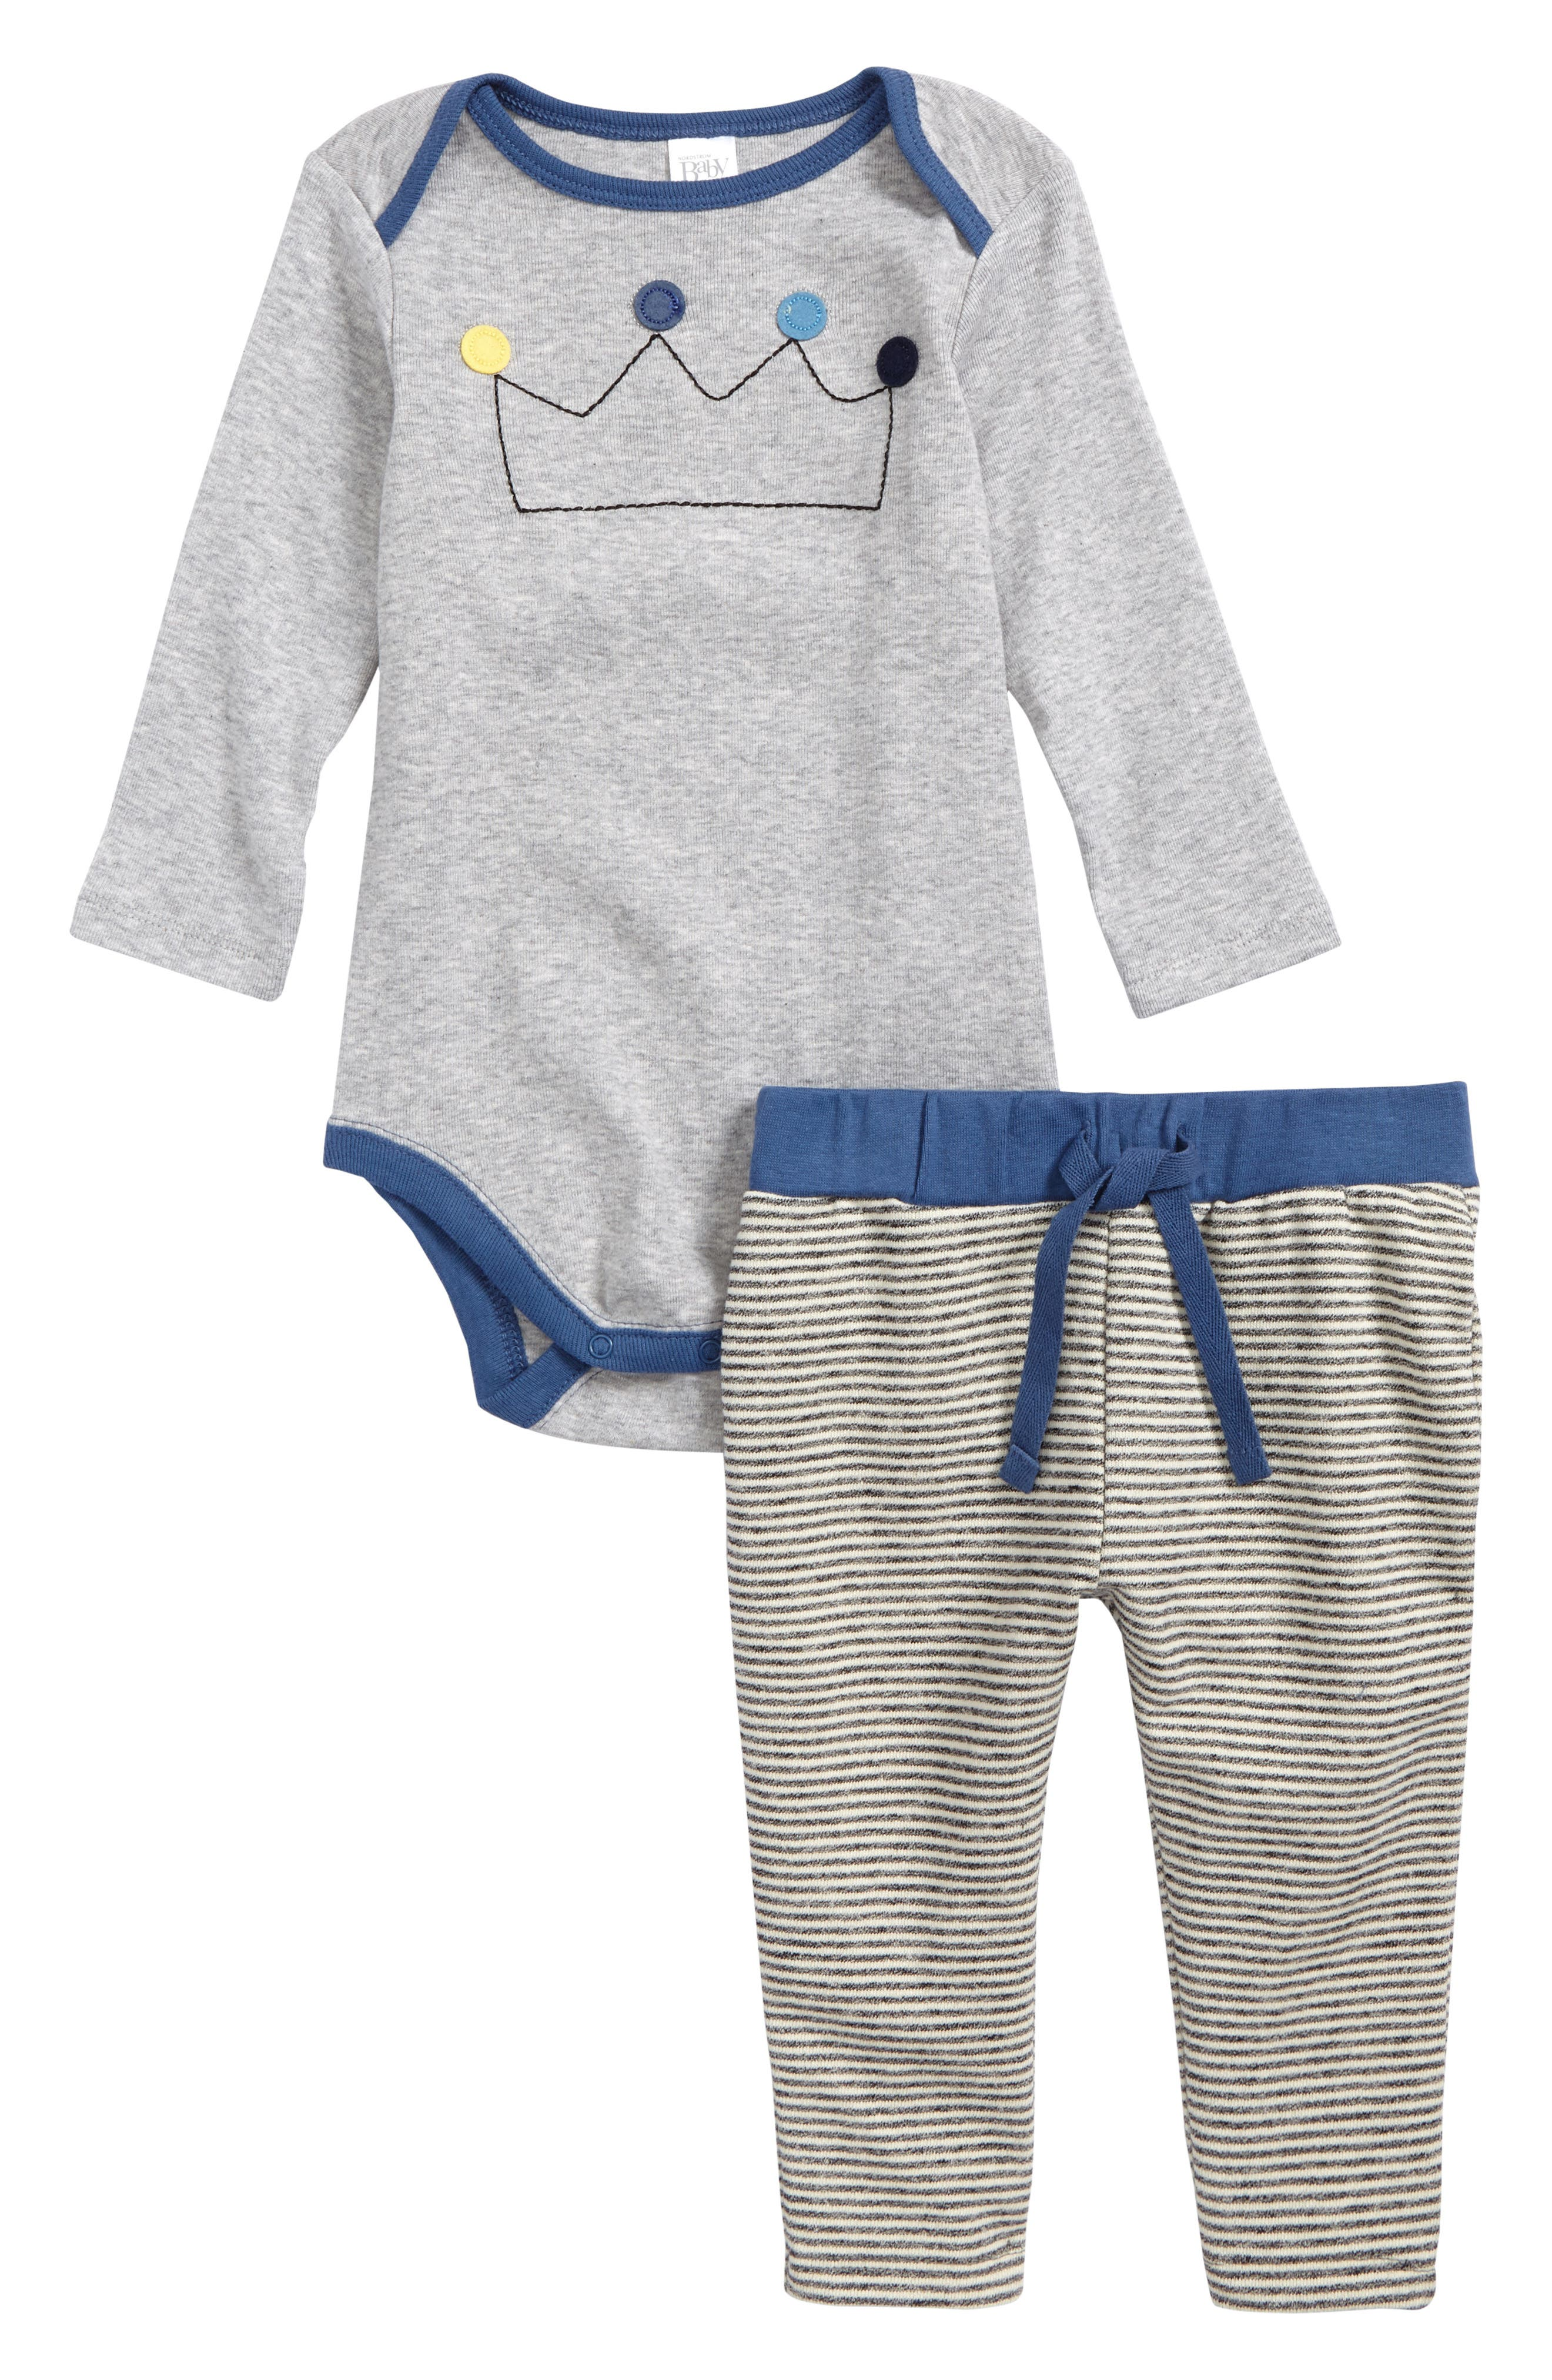 Appliqué Bodysuit & Sweatpants Set,                             Main thumbnail 1, color,                             050